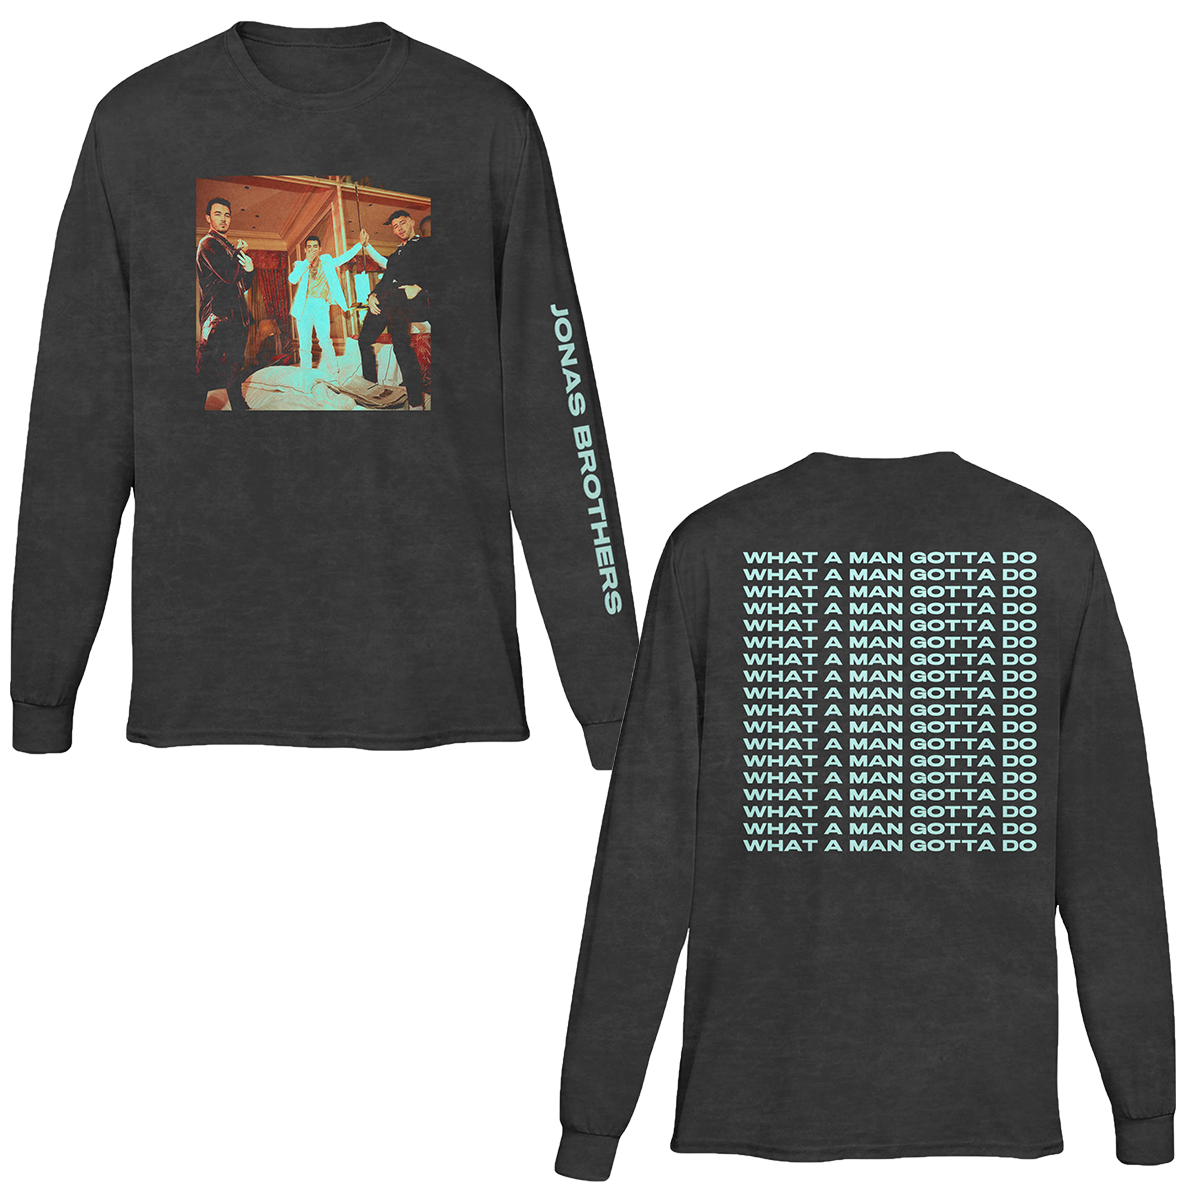 WHAT A MAN GOTTA DO BLACK LONGSLEEVE